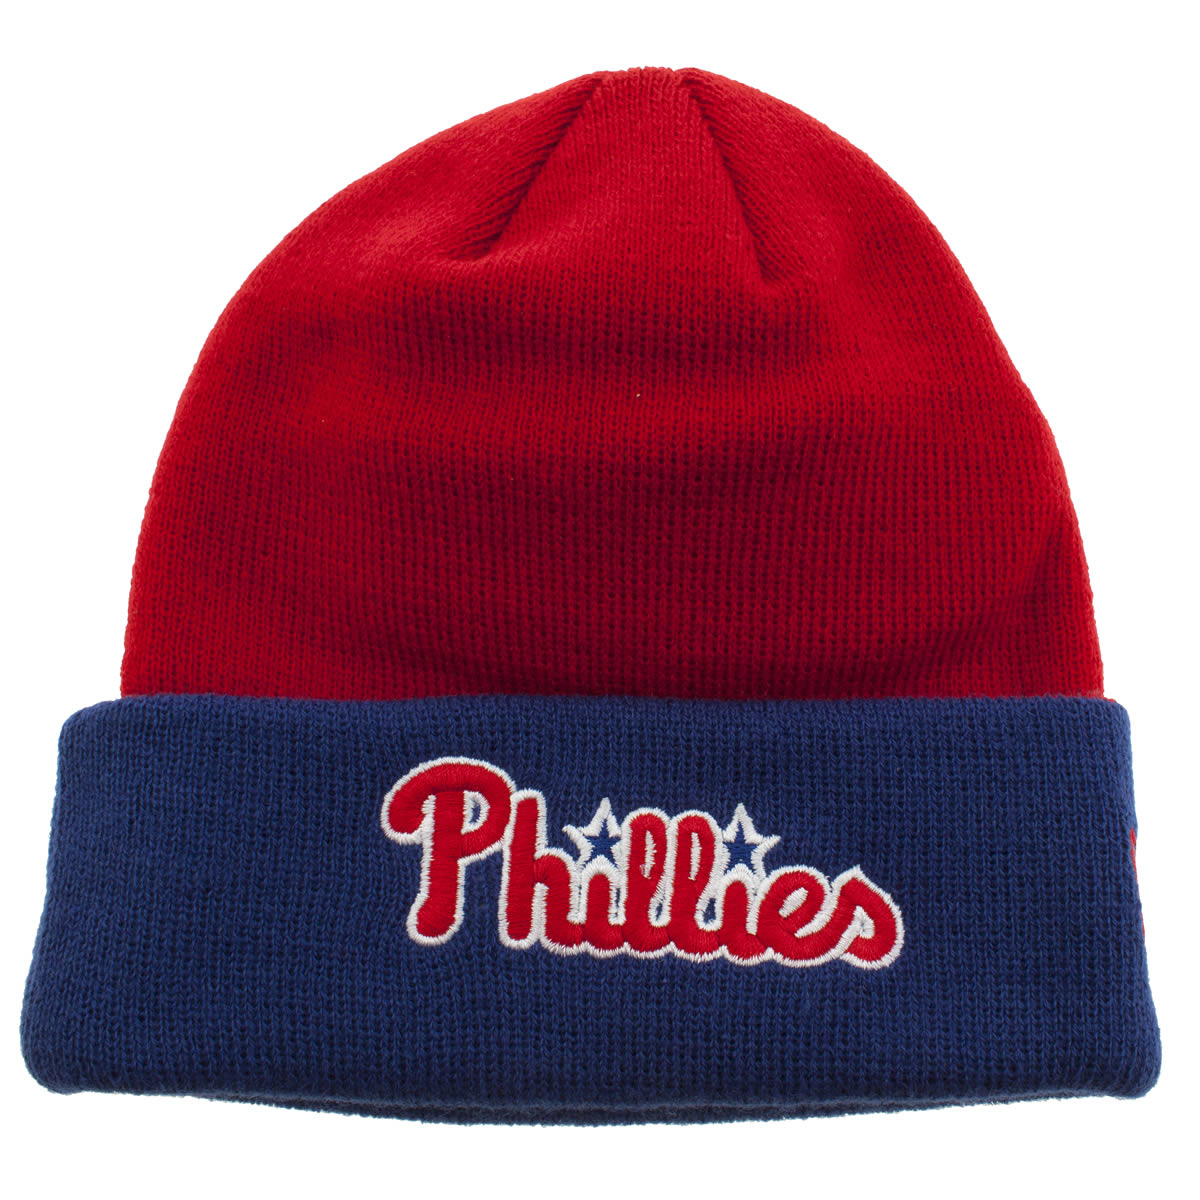 Photo of New era red kids phillies now switch caps and hats